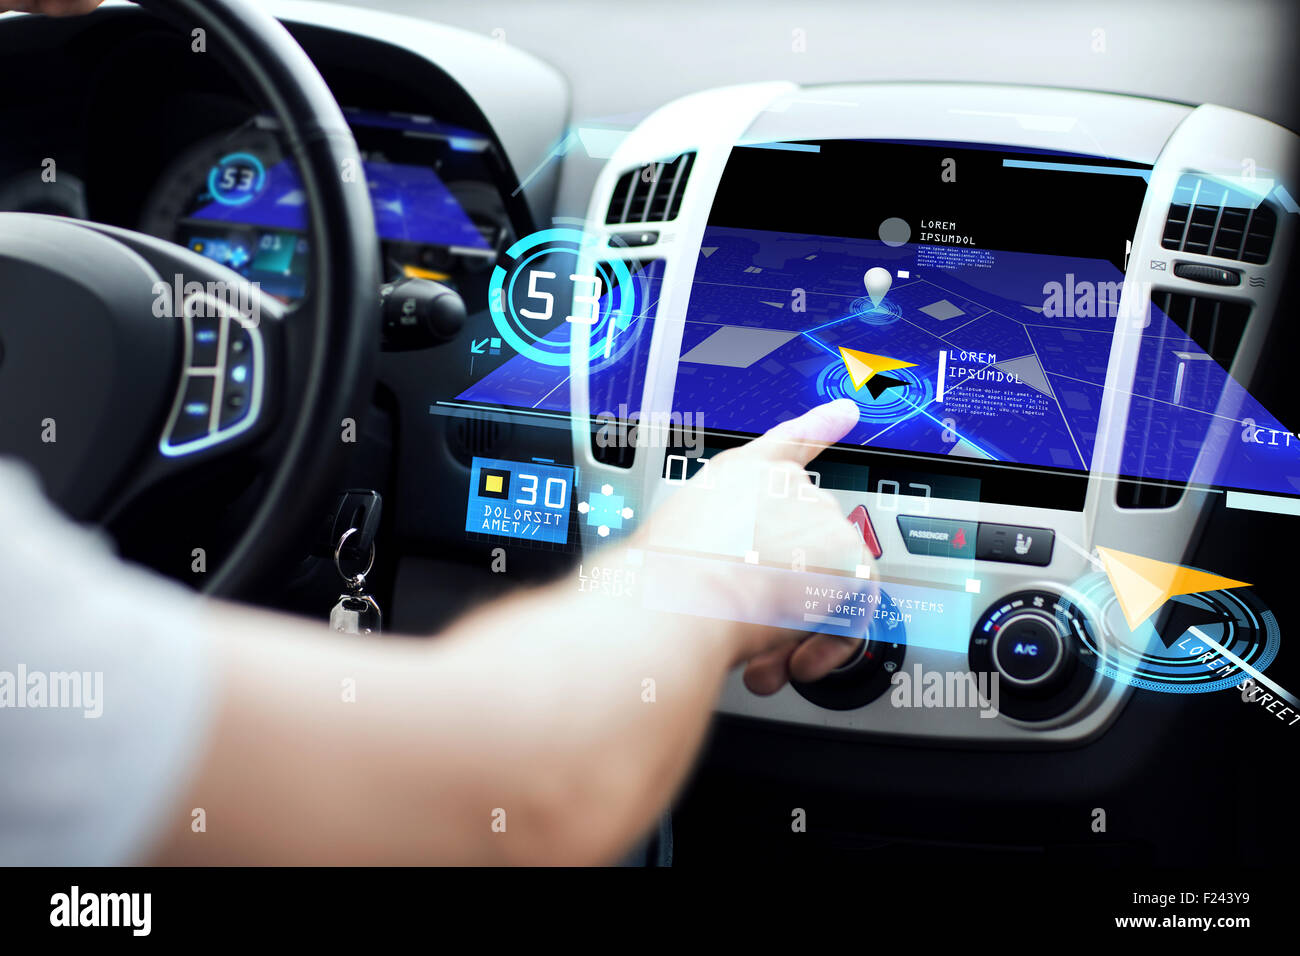 male hand using navigation system on car dashboard - Stock Image